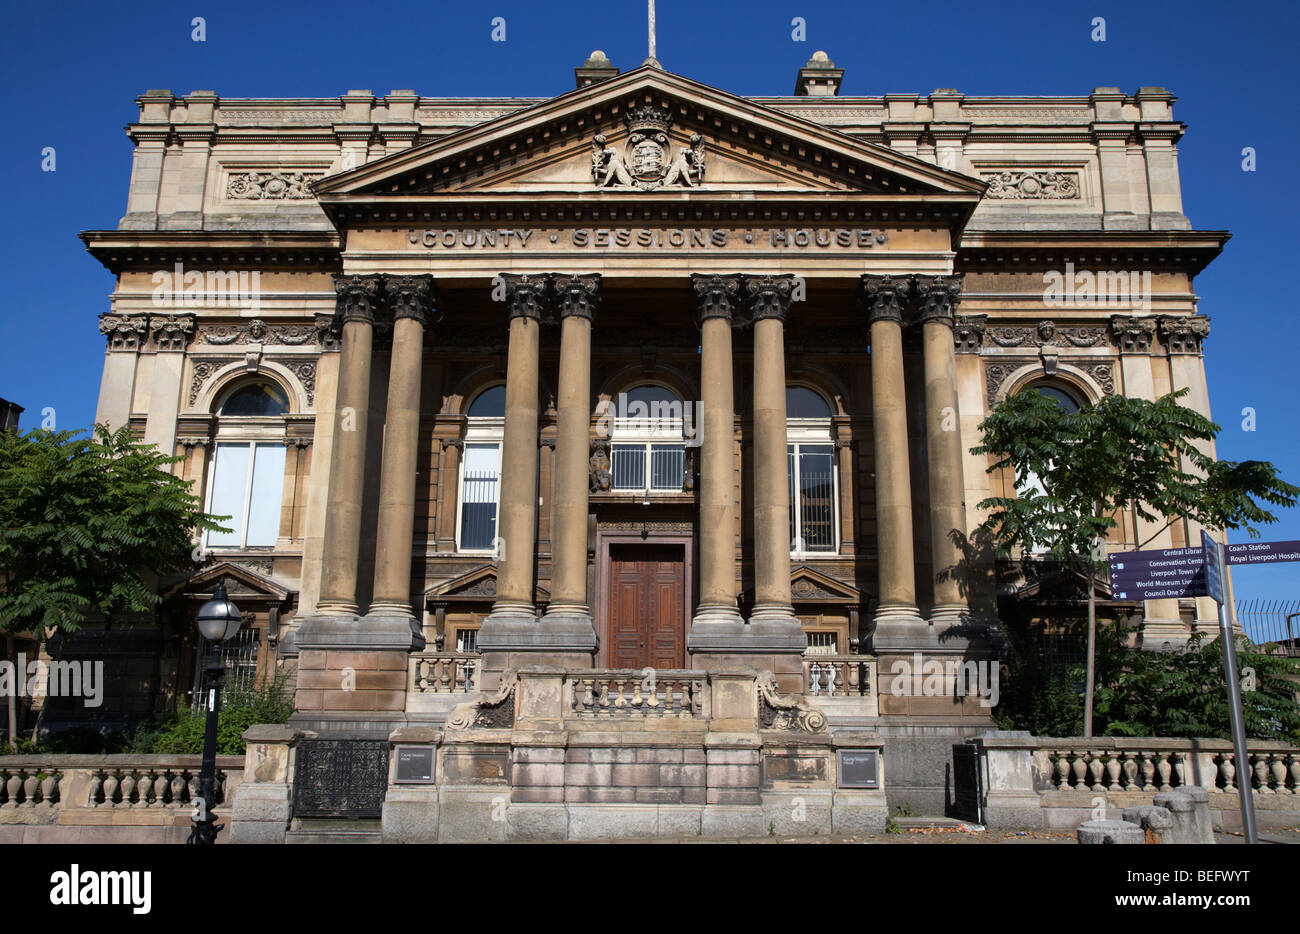 county sessions house former courthouse and now offices of the national museums william brown street conservation - Stock Image